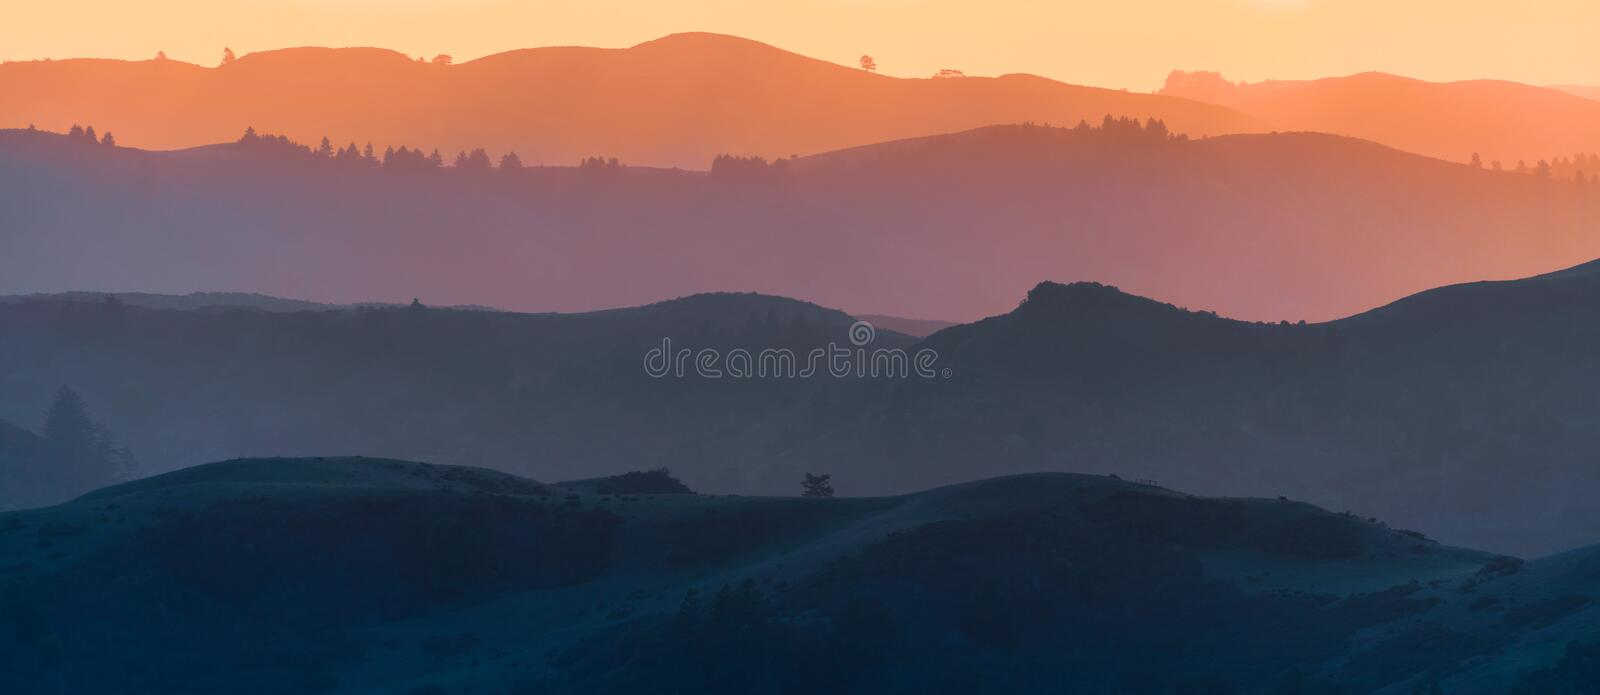 Sunset view of hills and valleys, each layer colored differently;  Santa Cruz mountains ; San Francisco bay area, California royalty free stock photos